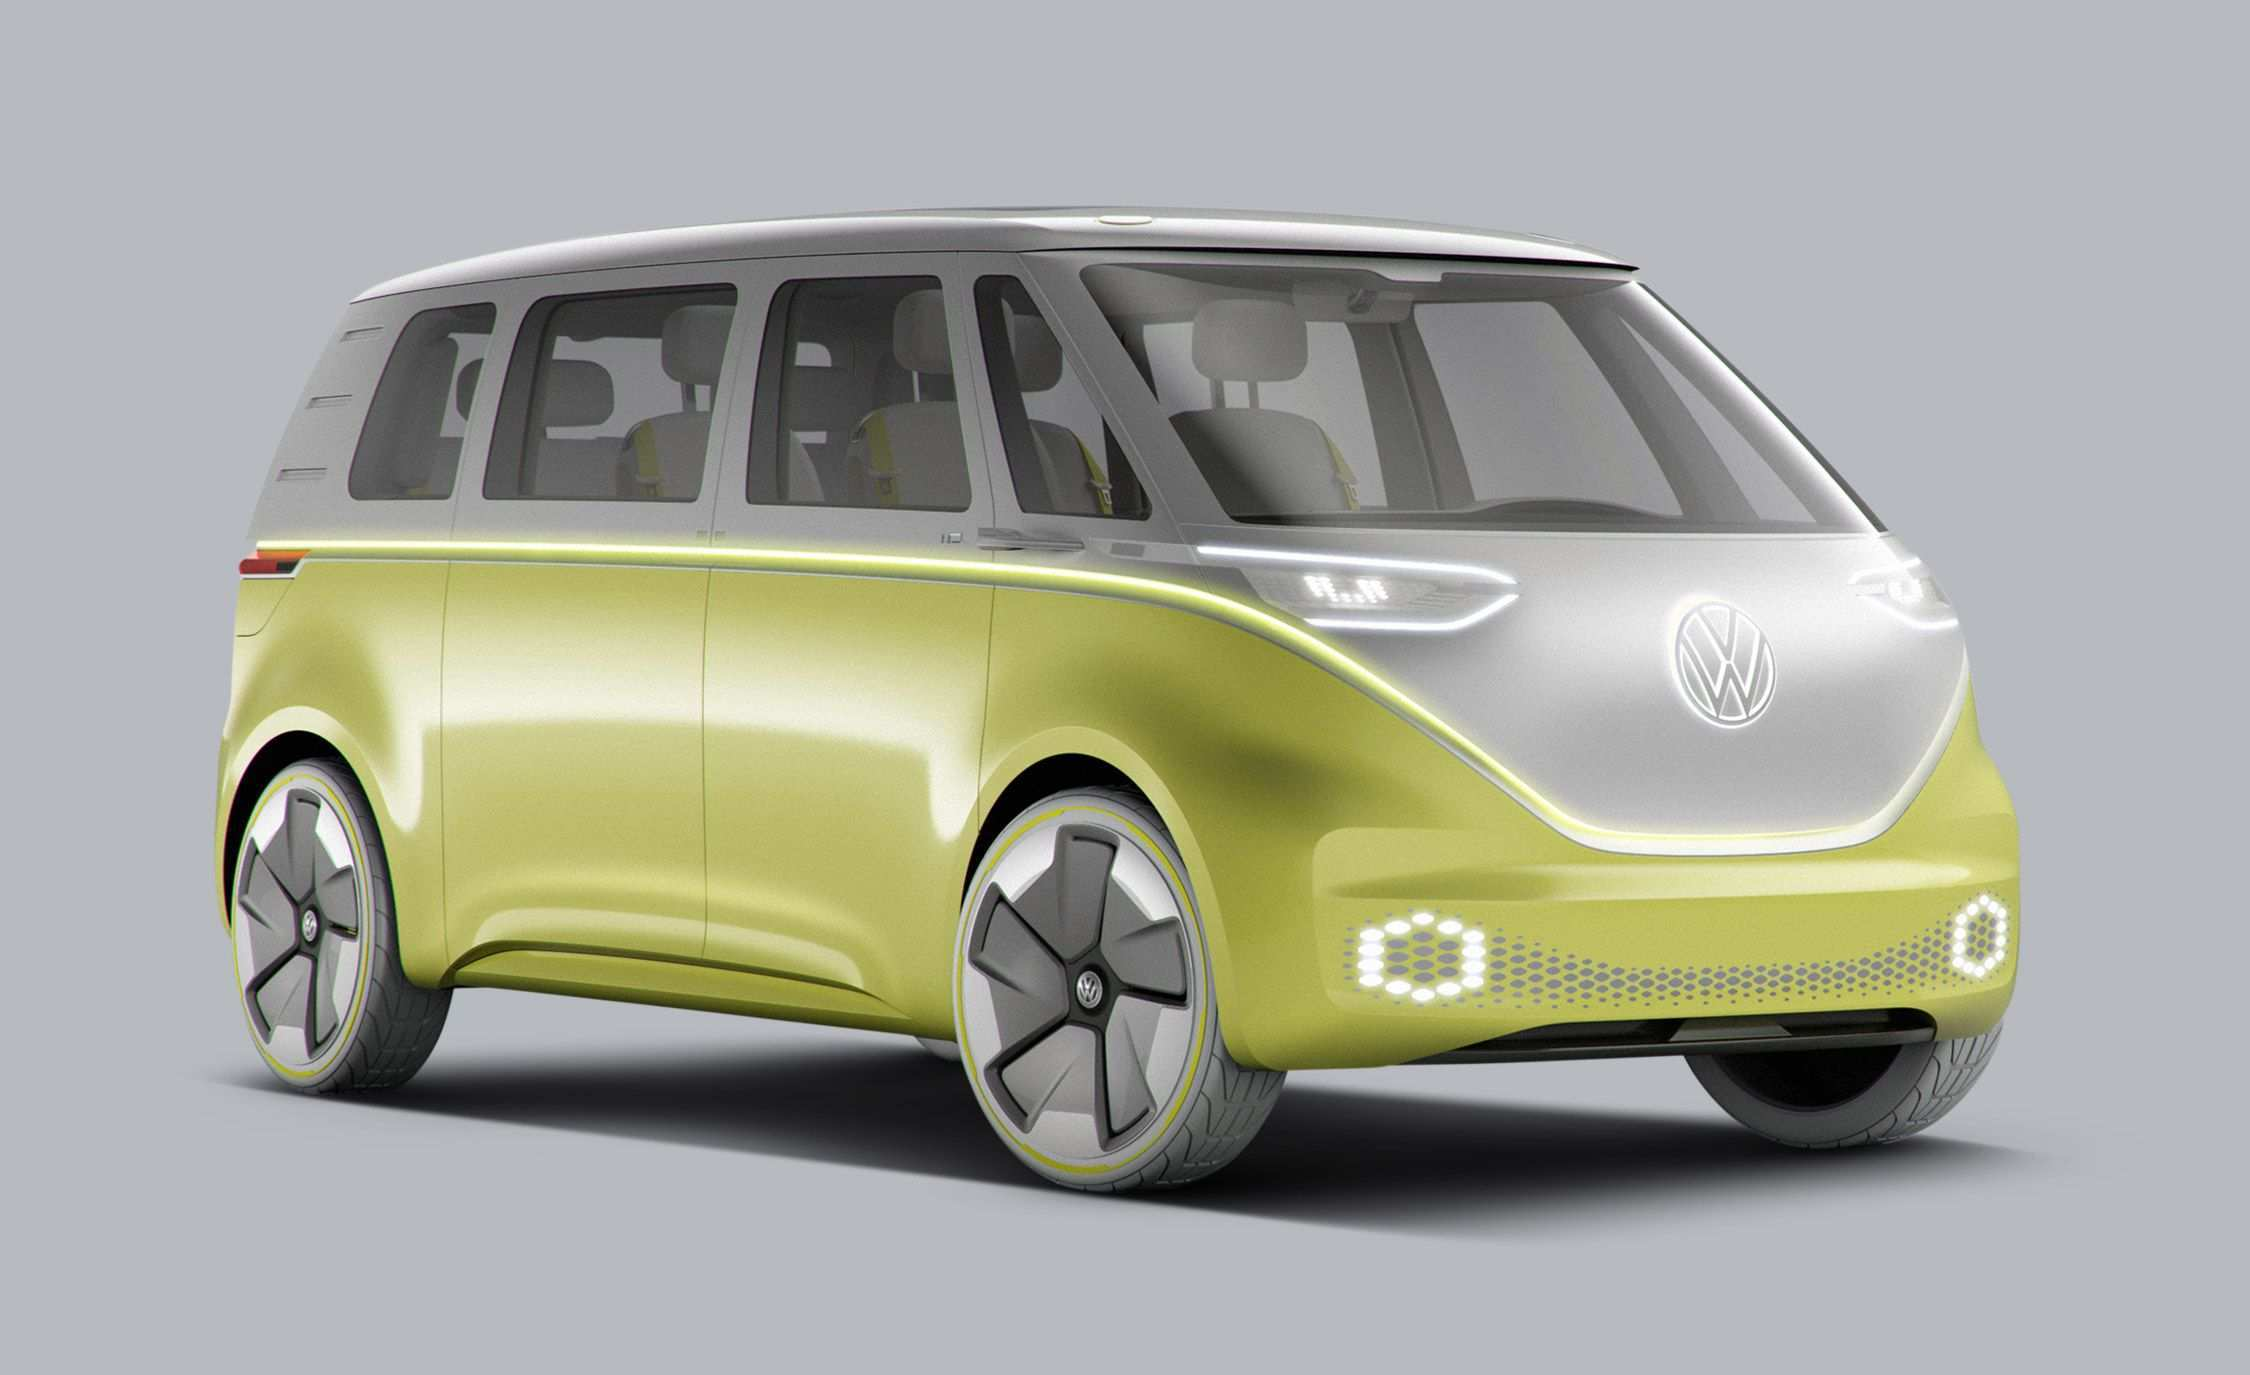 18 New 2020 Electric Volkswagen Bus Price and Review by 2020 Electric Volkswagen Bus